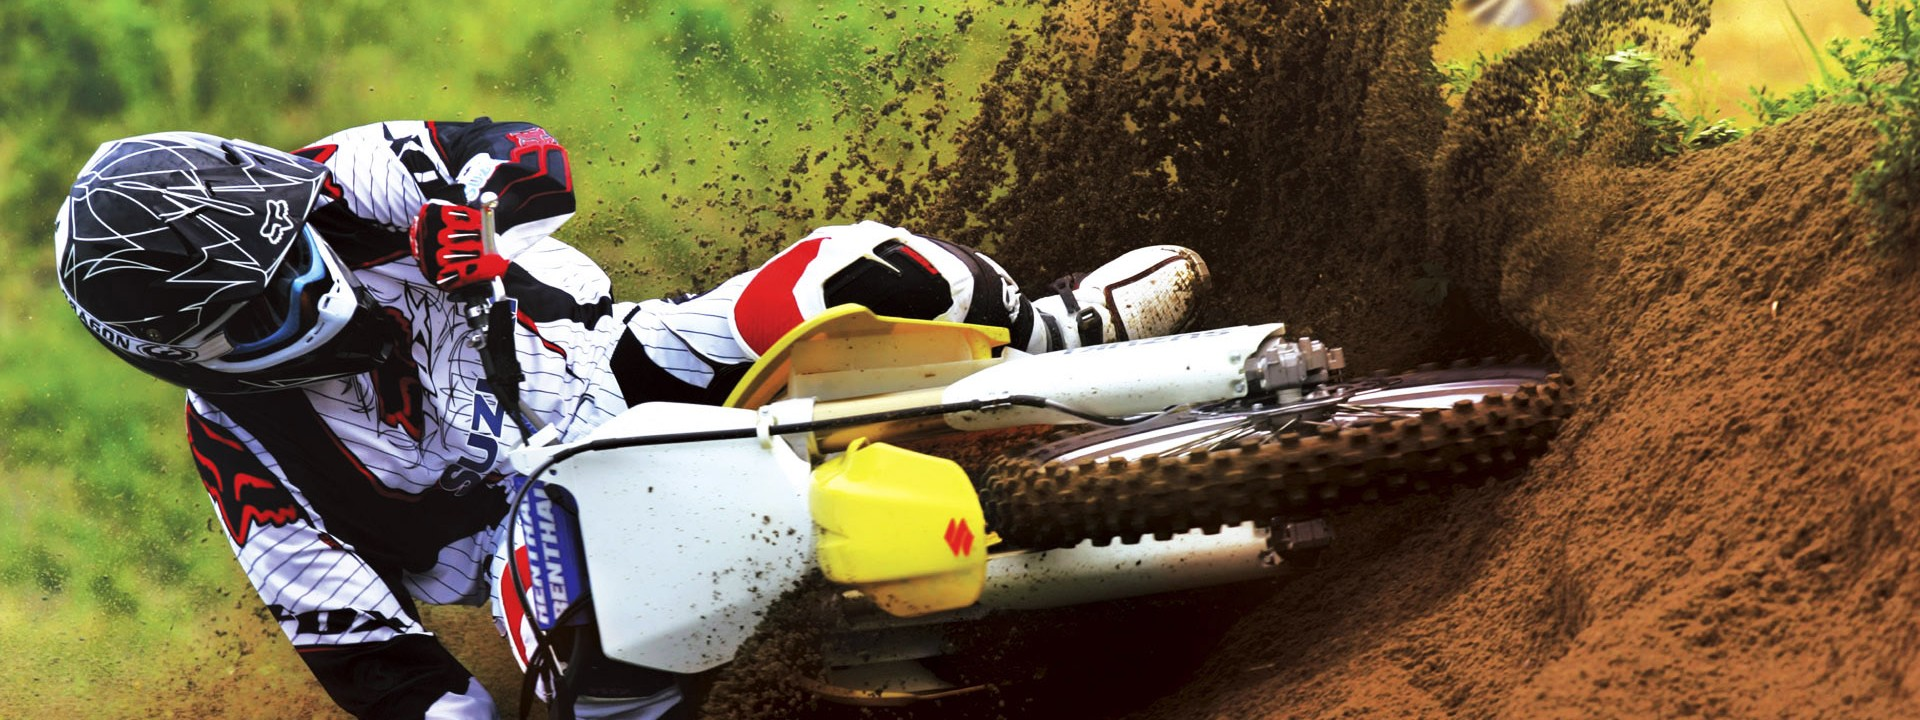 suzuki_motocross_bike_race-wide-e1440445128188